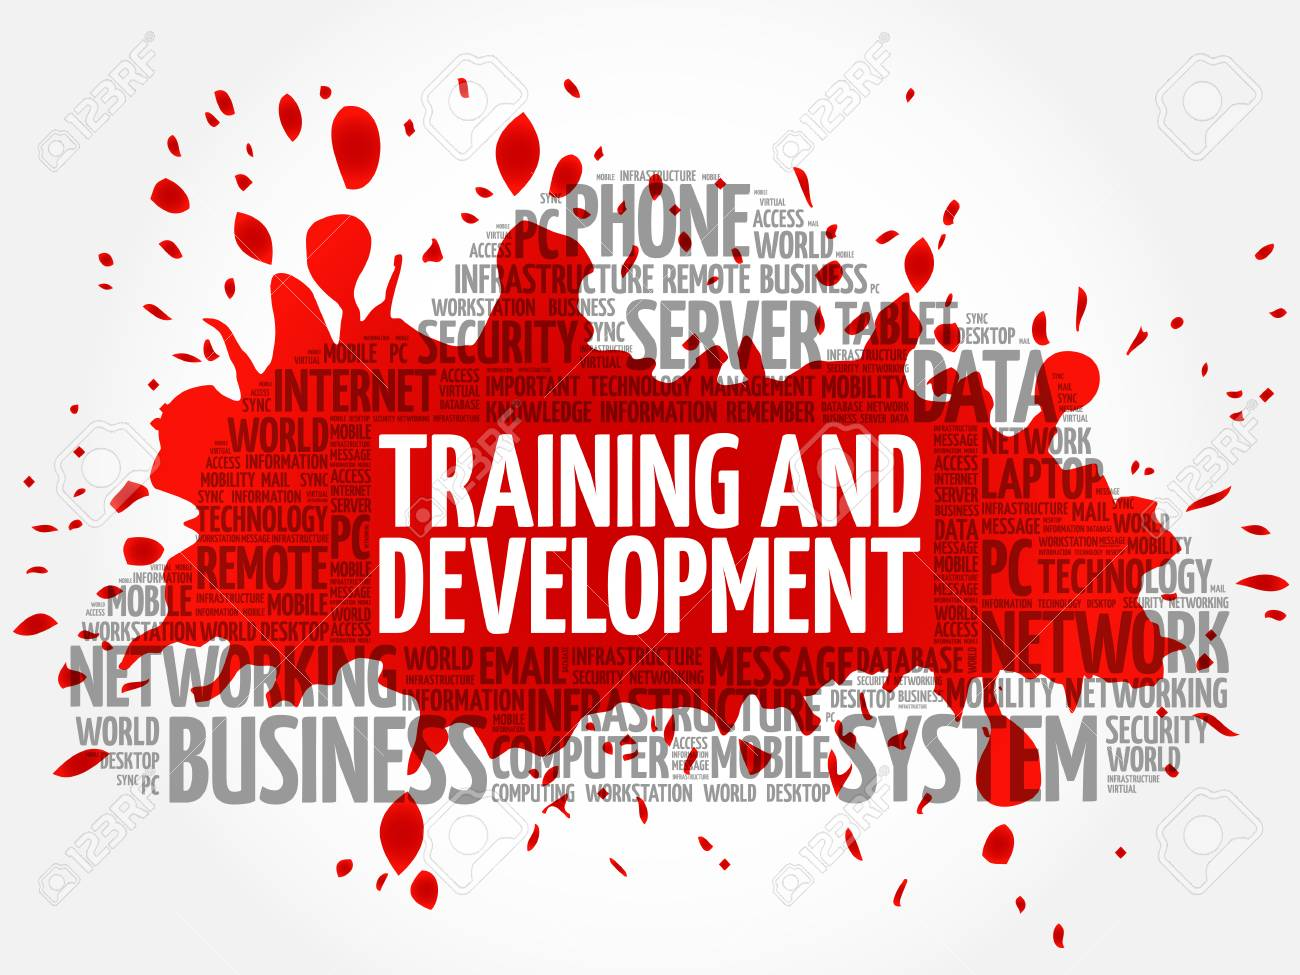 Training and Development word cloud concept